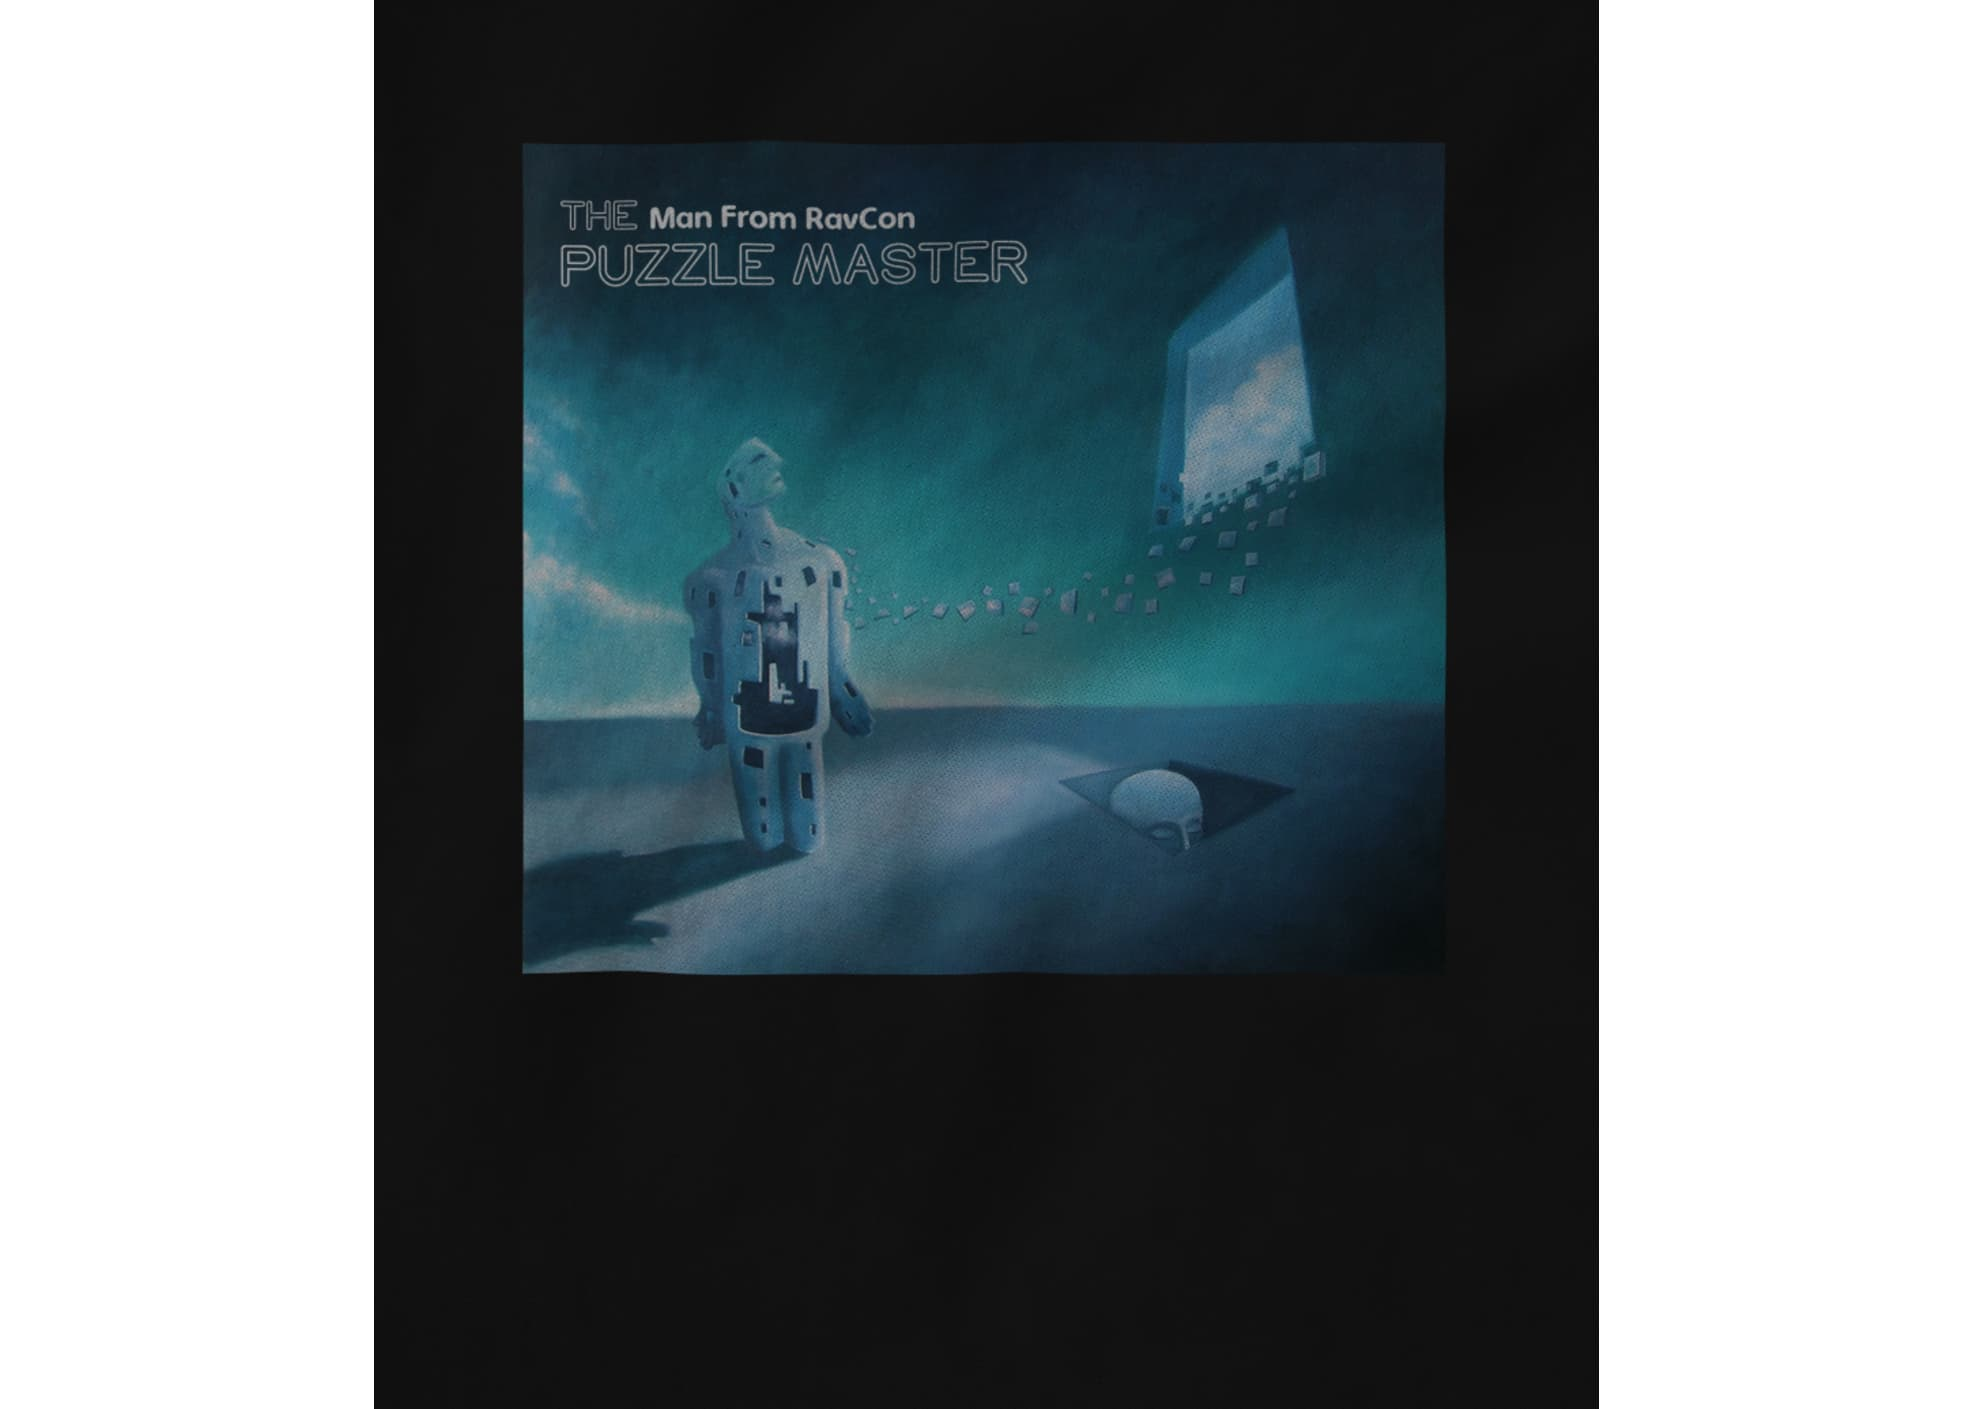 The man from ravcon puzzle master 1481377795